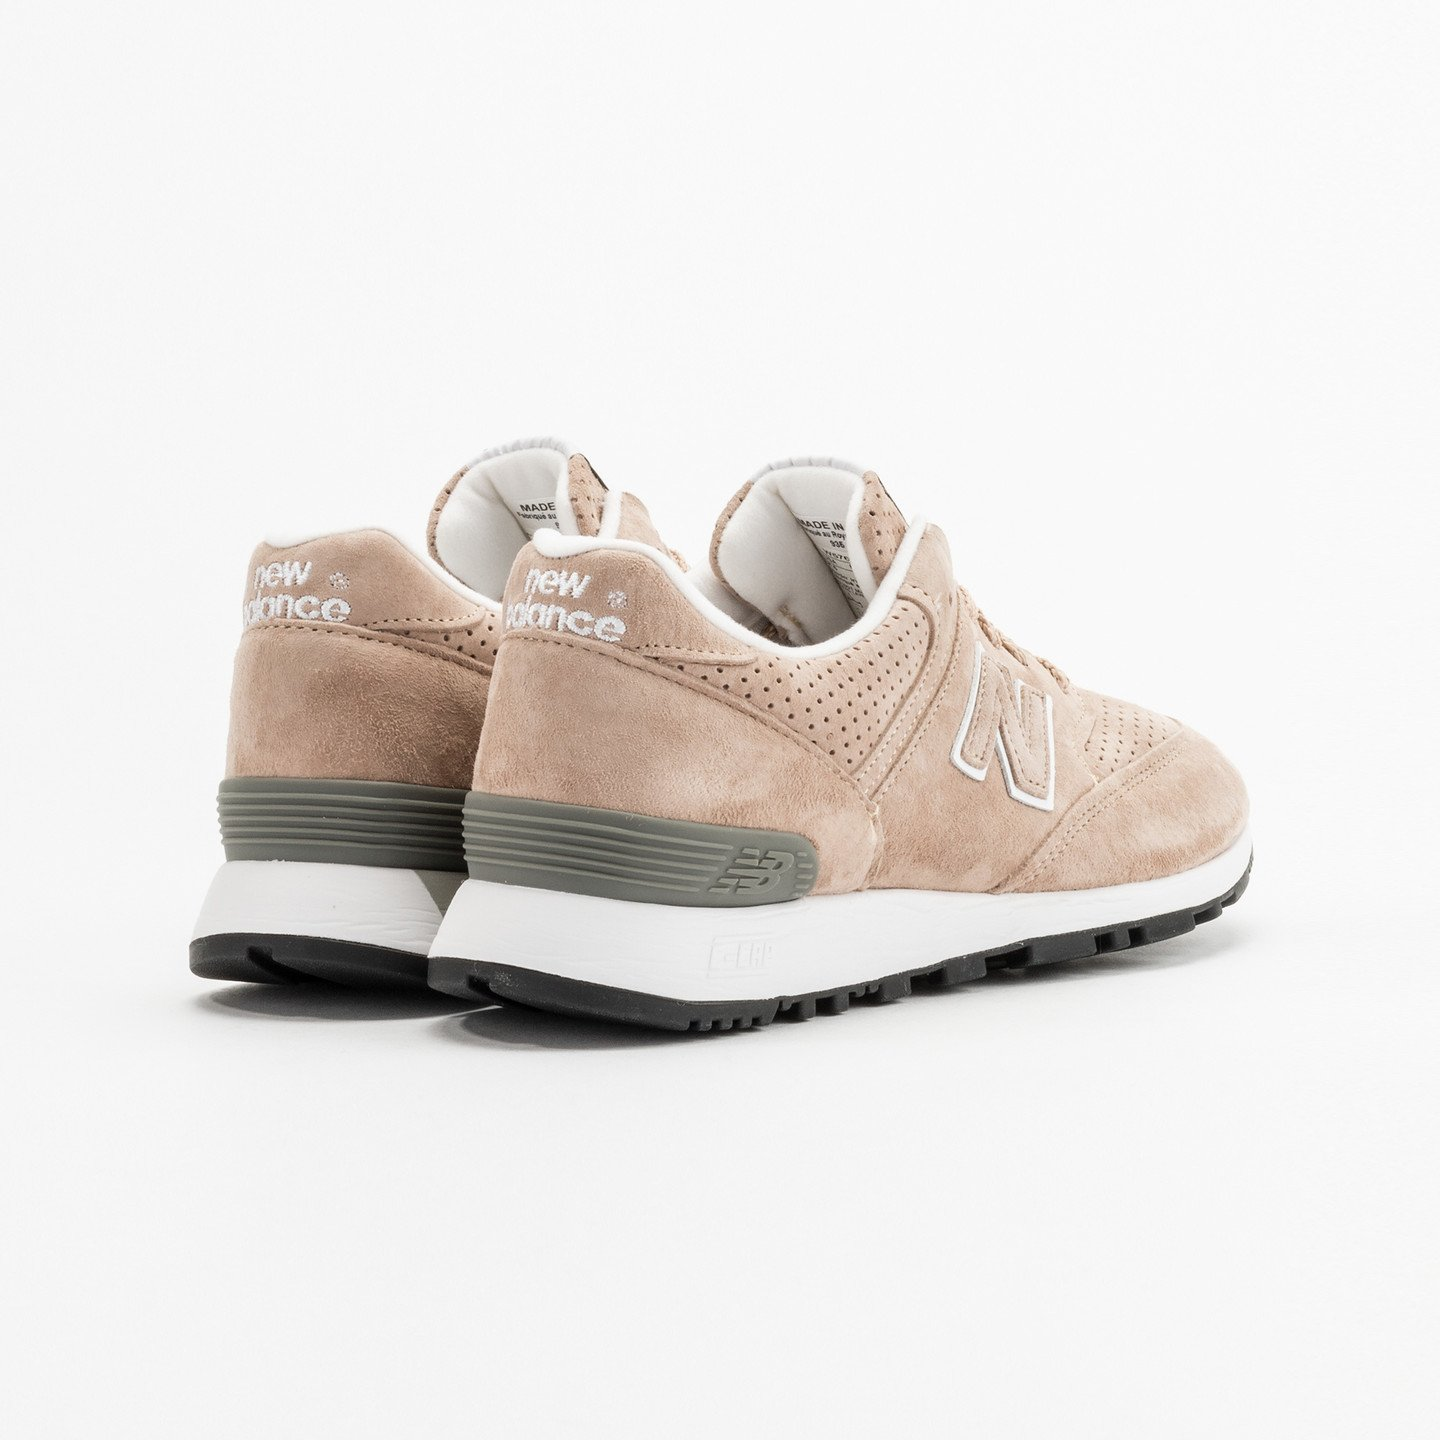 New Balance W576 TTO - Made in UK Light Brown / White W576TTO-41